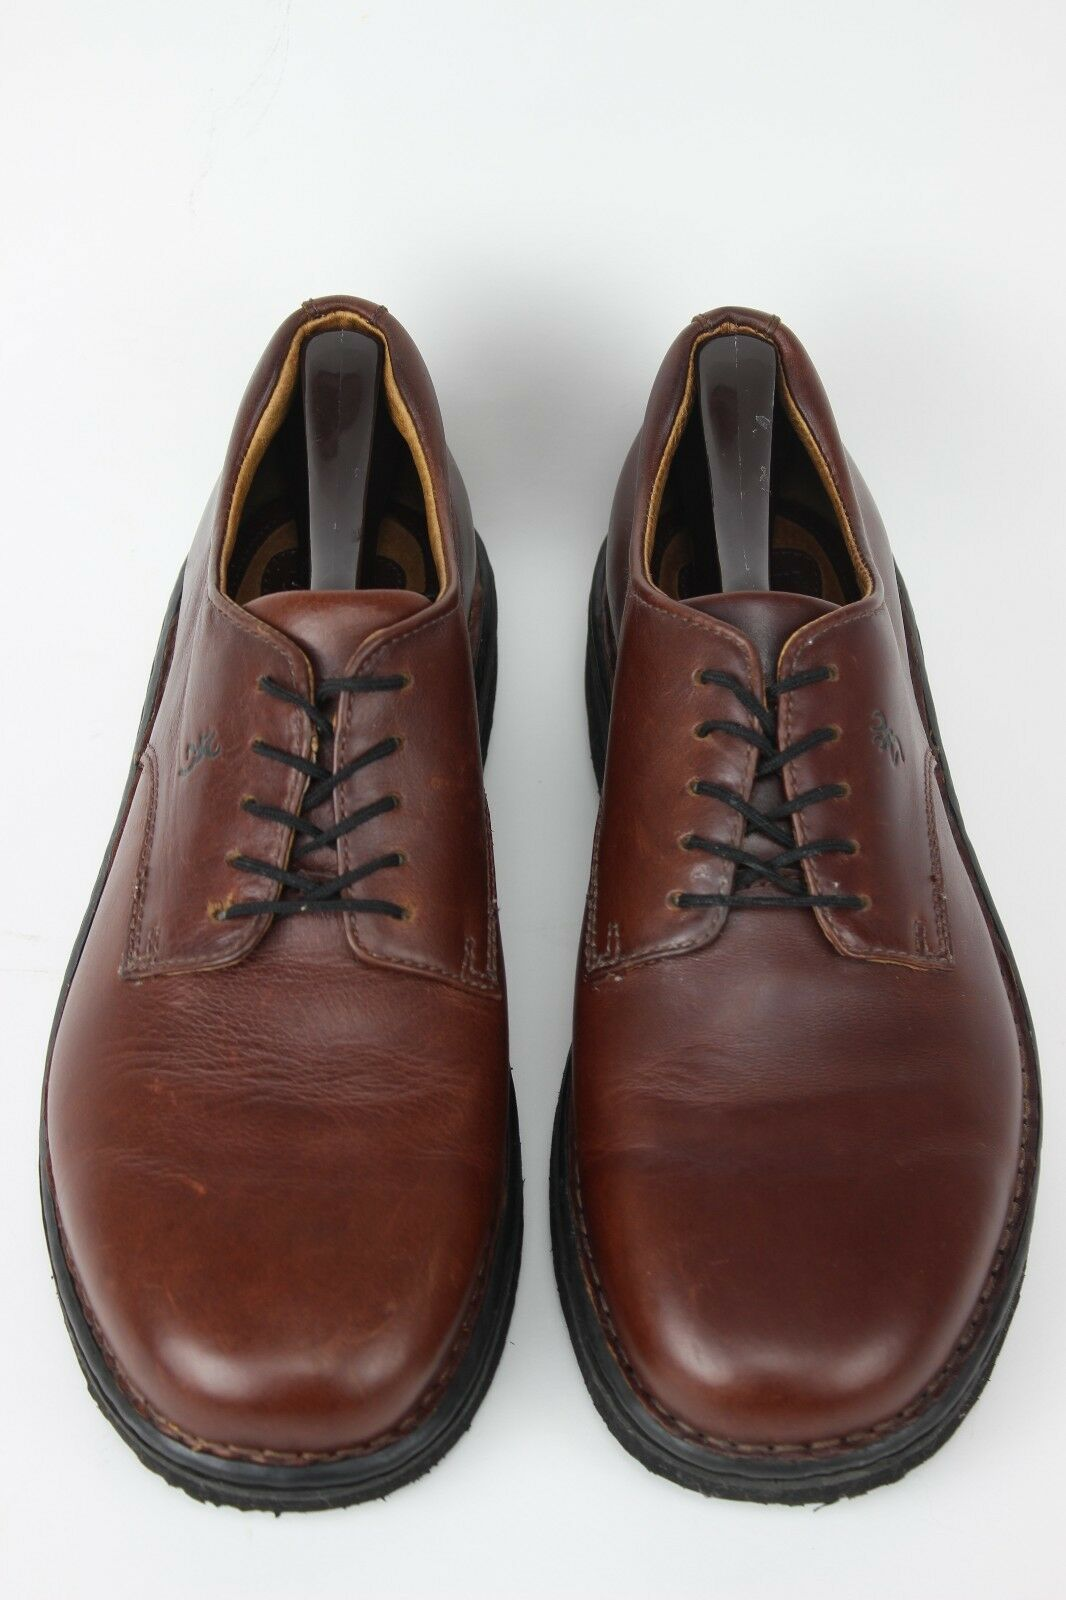 MEN'S BROWNING 5004 COGNAC PEBBLED LEATHER PLAIN TOE WORK OXFORDS SIZE 8.5 M.